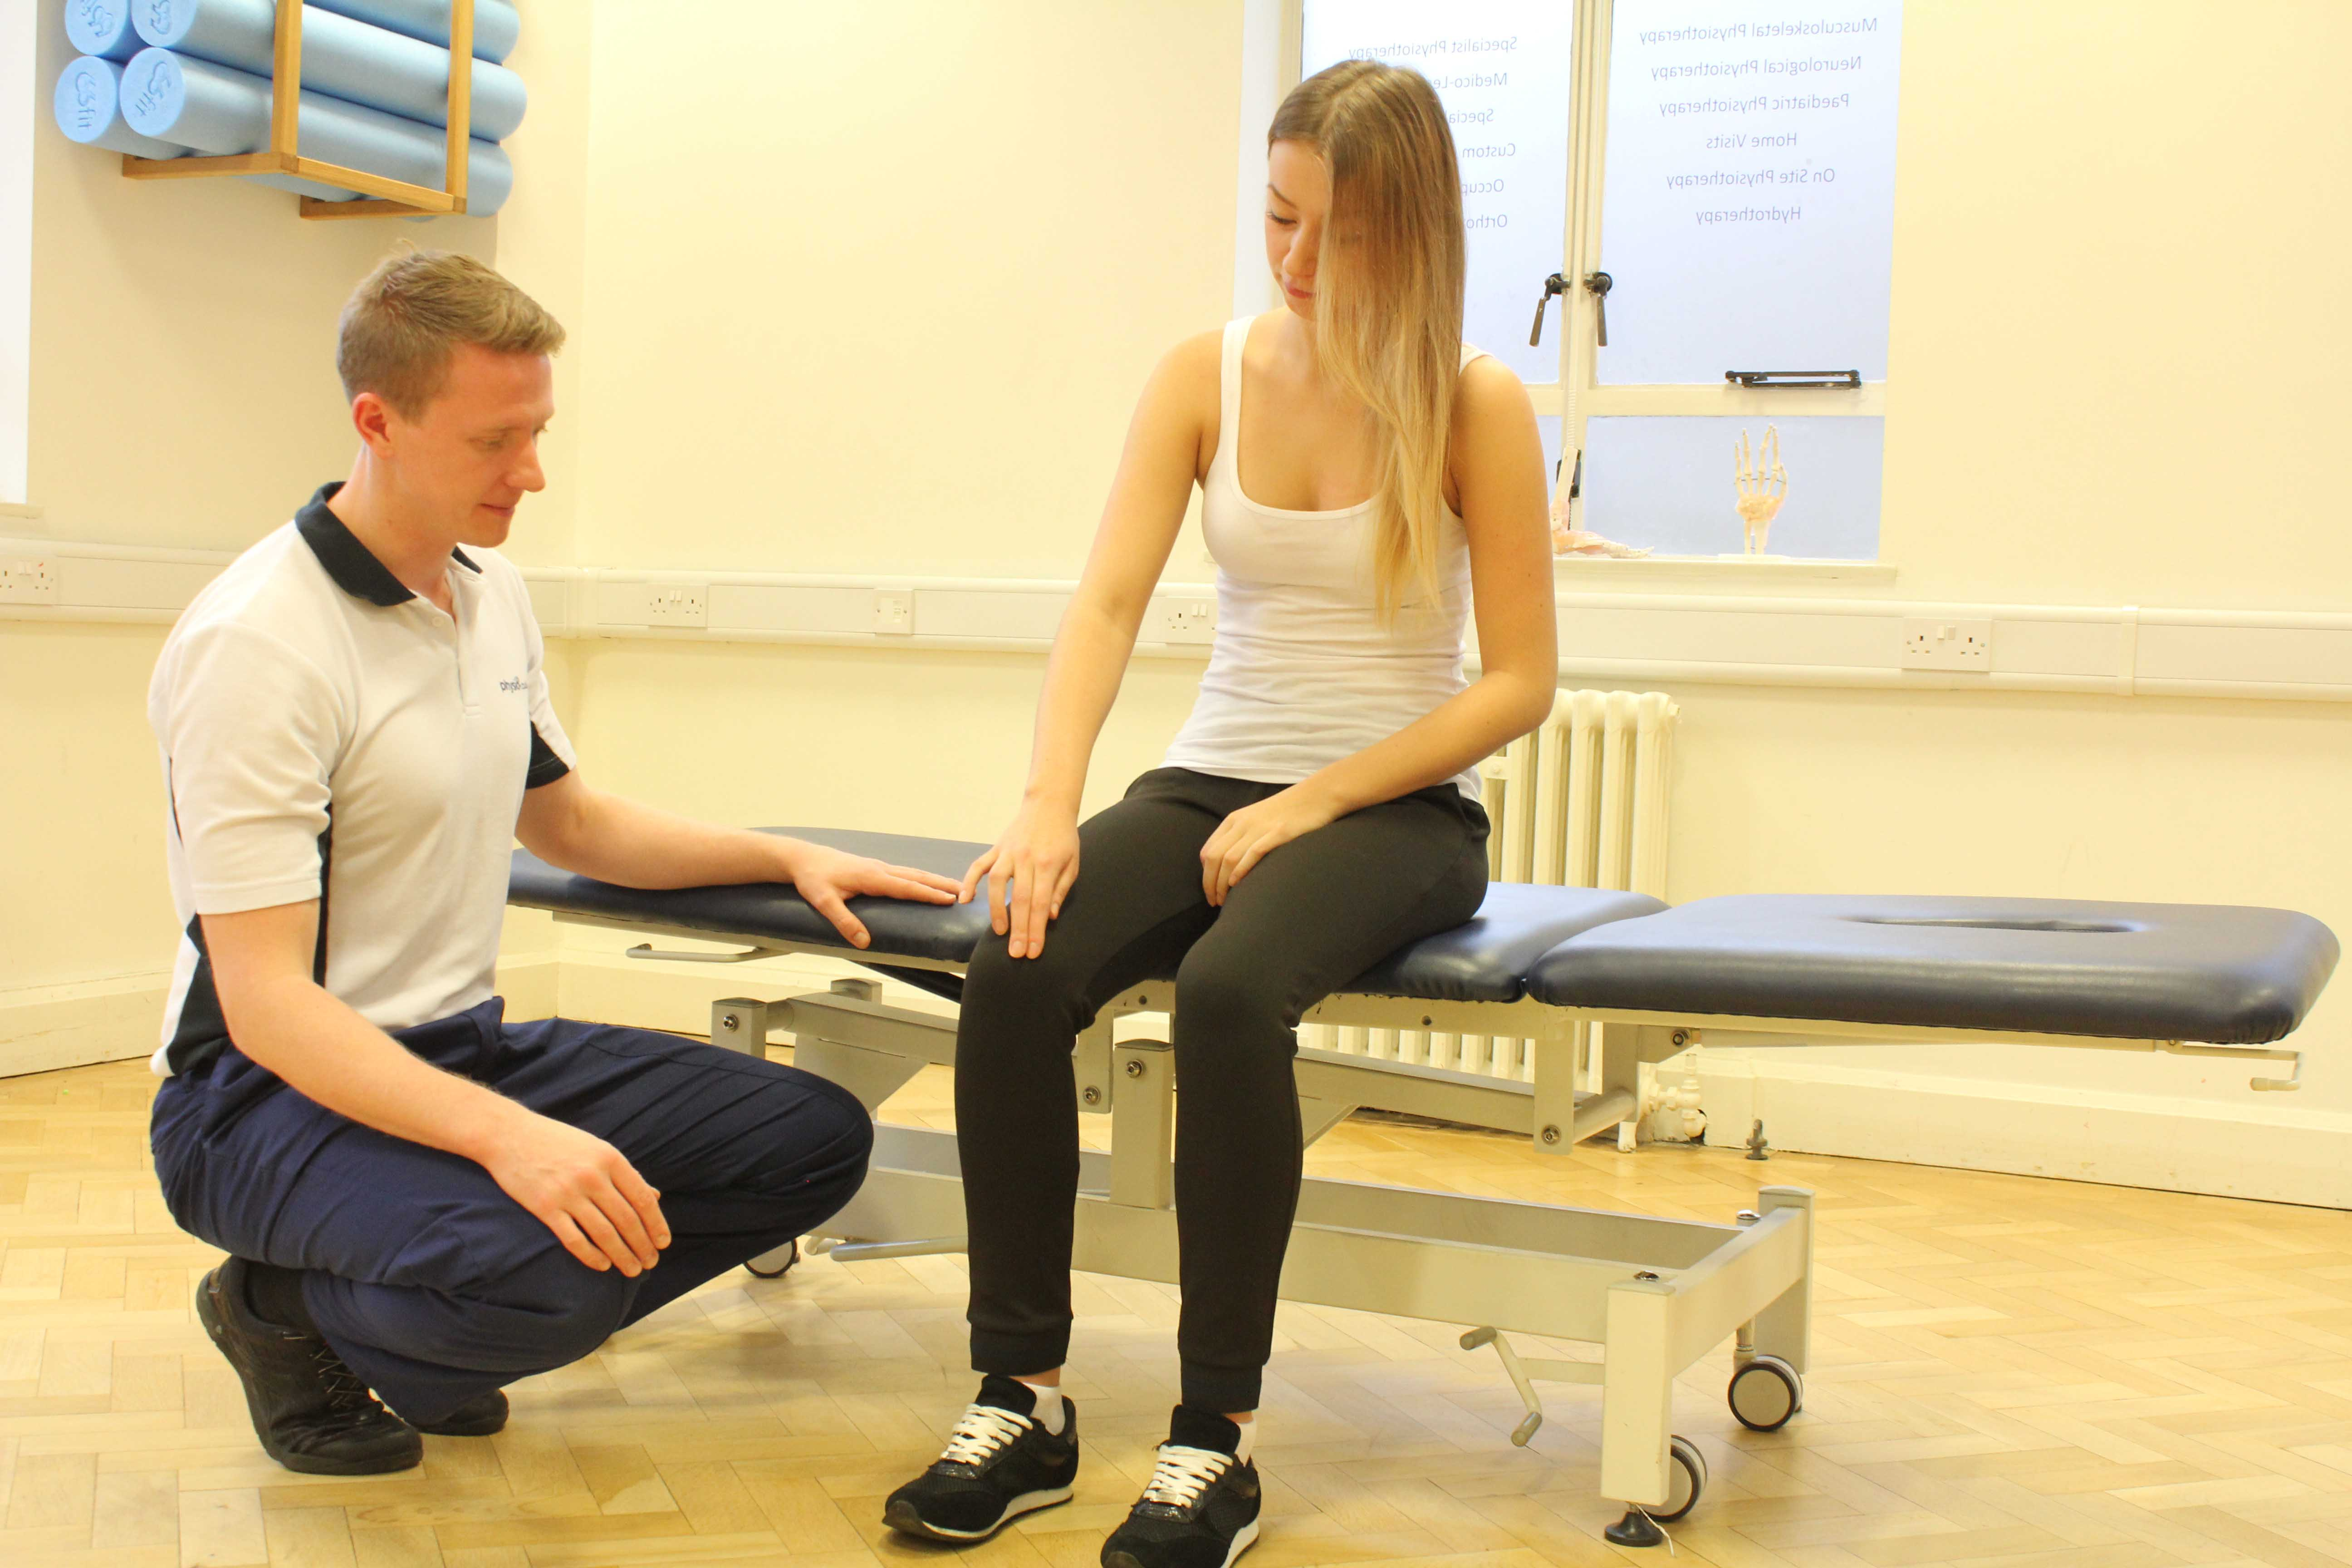 Physiotherapy subjective assessment of the knee